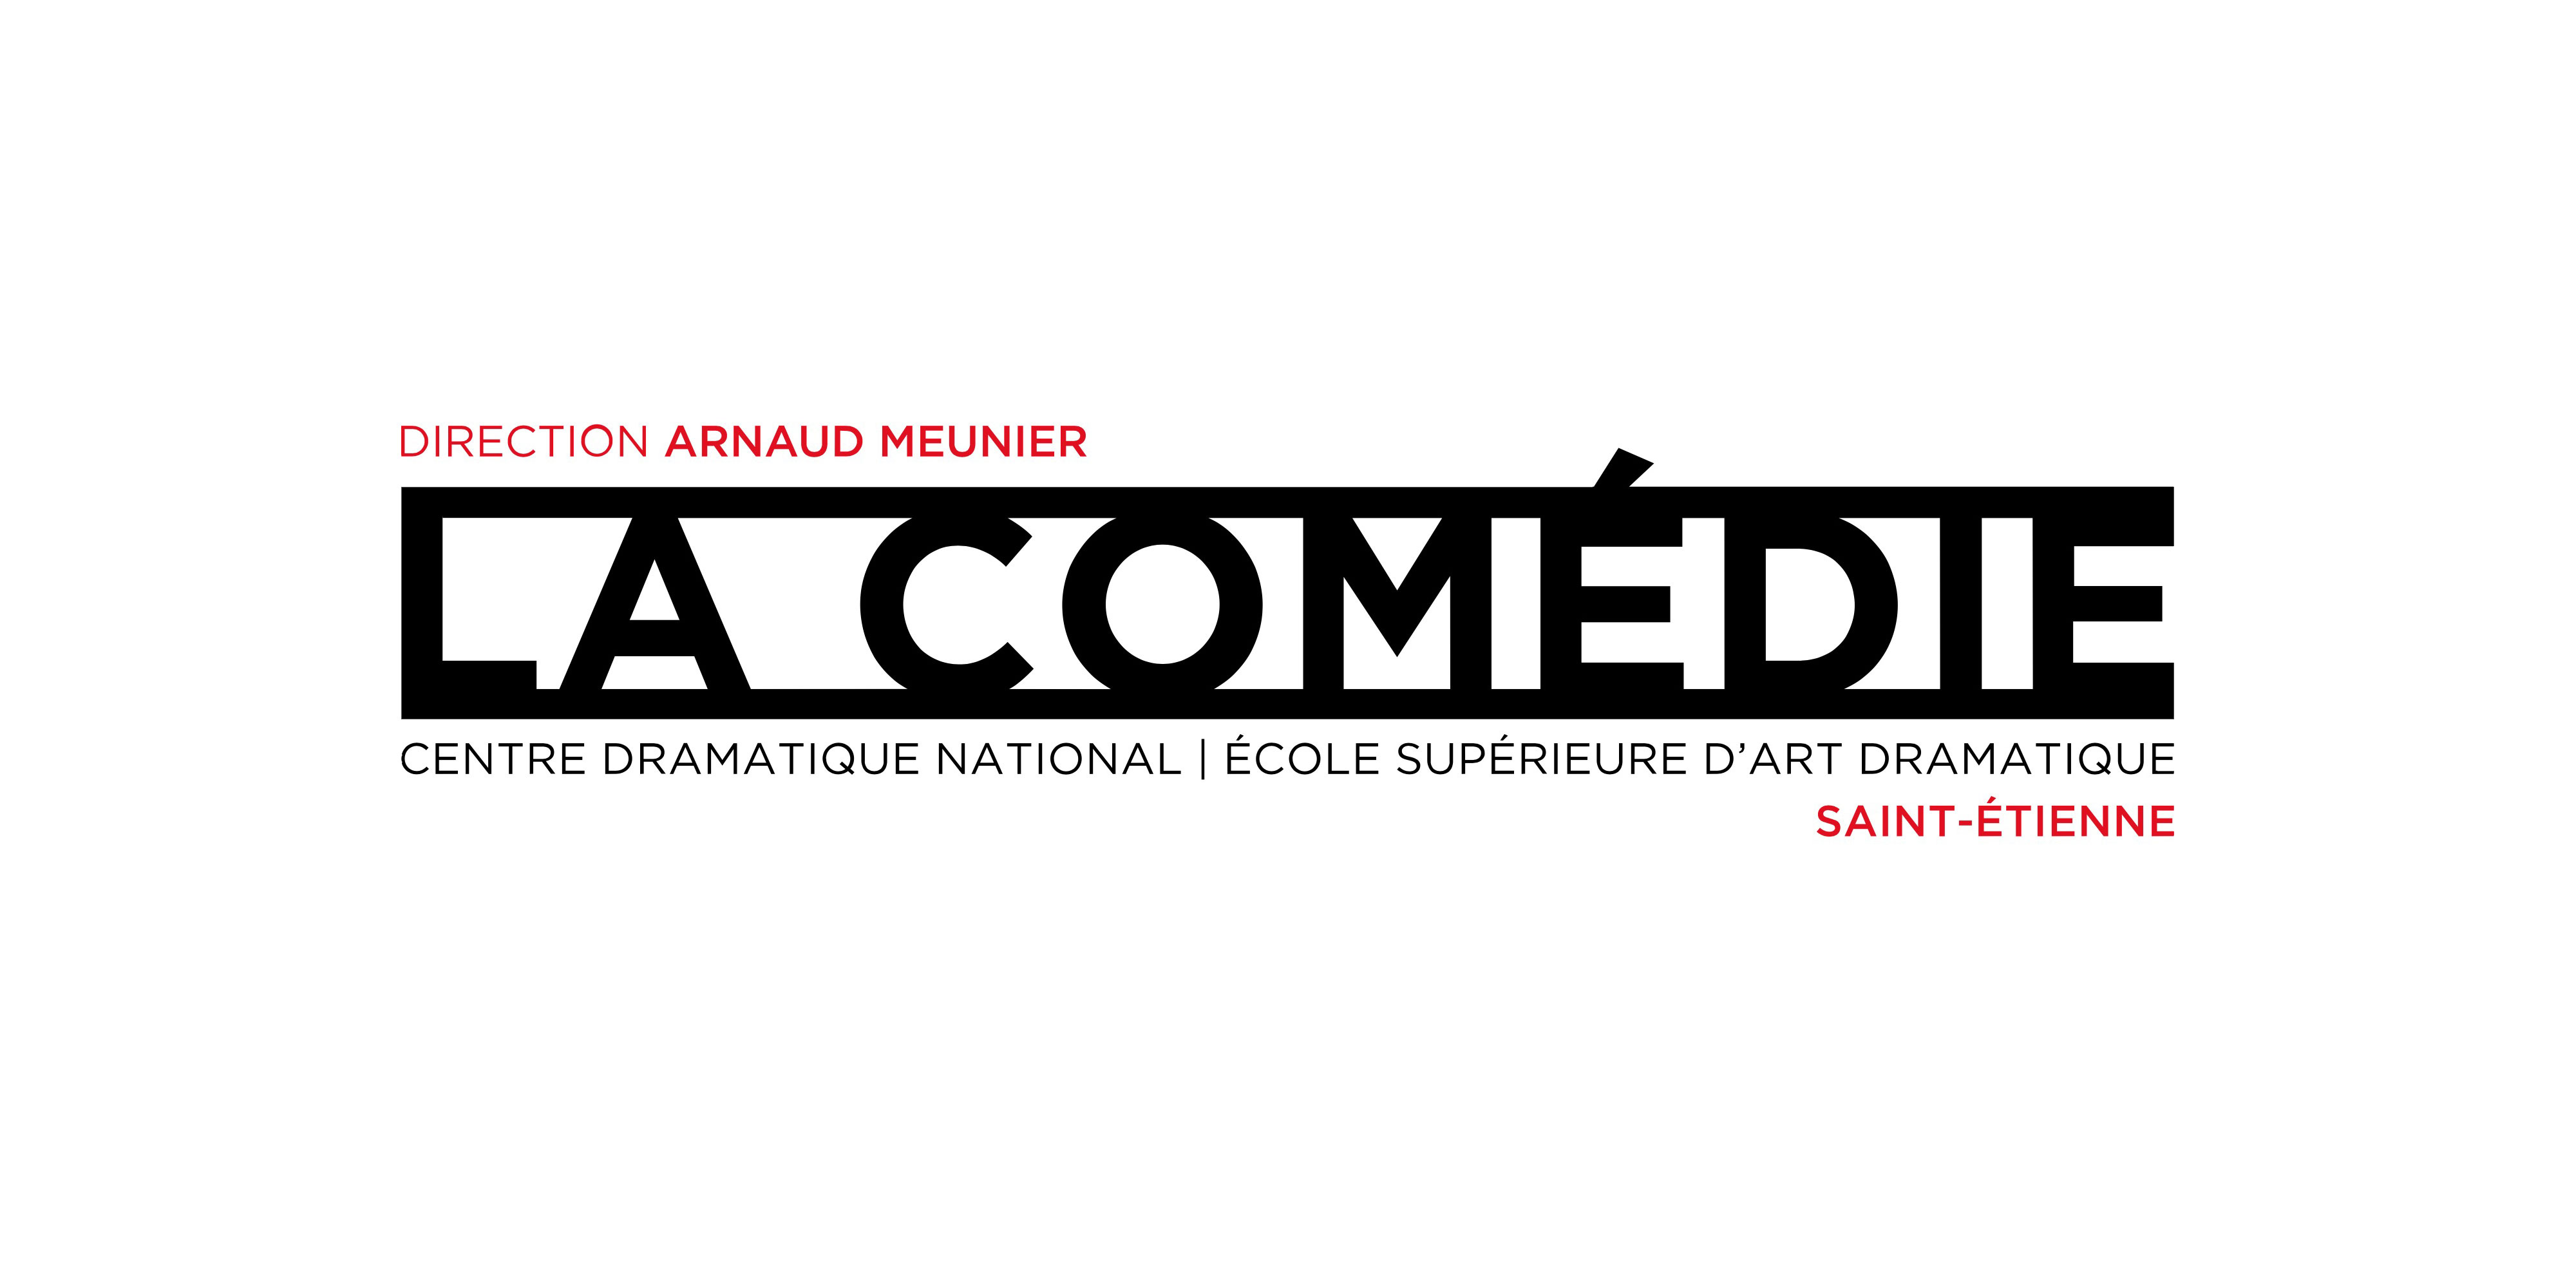 La Comédie de Saint-Étienne, National Drama Center